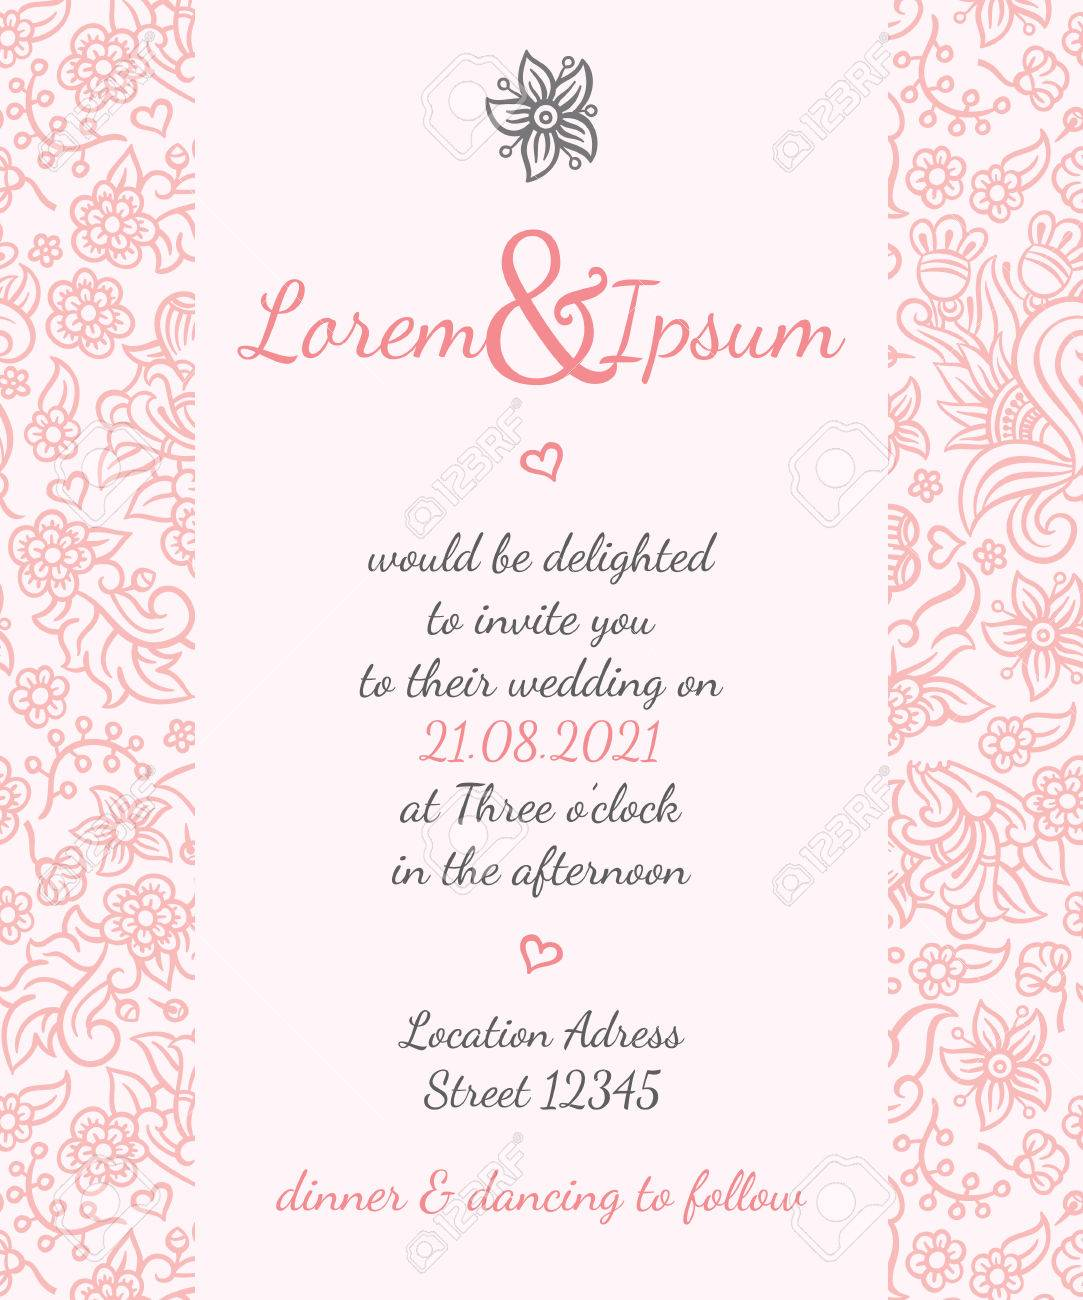 Invitation wedding card vector template - for invitations, flyers, postcards, cards and so on - 43440066